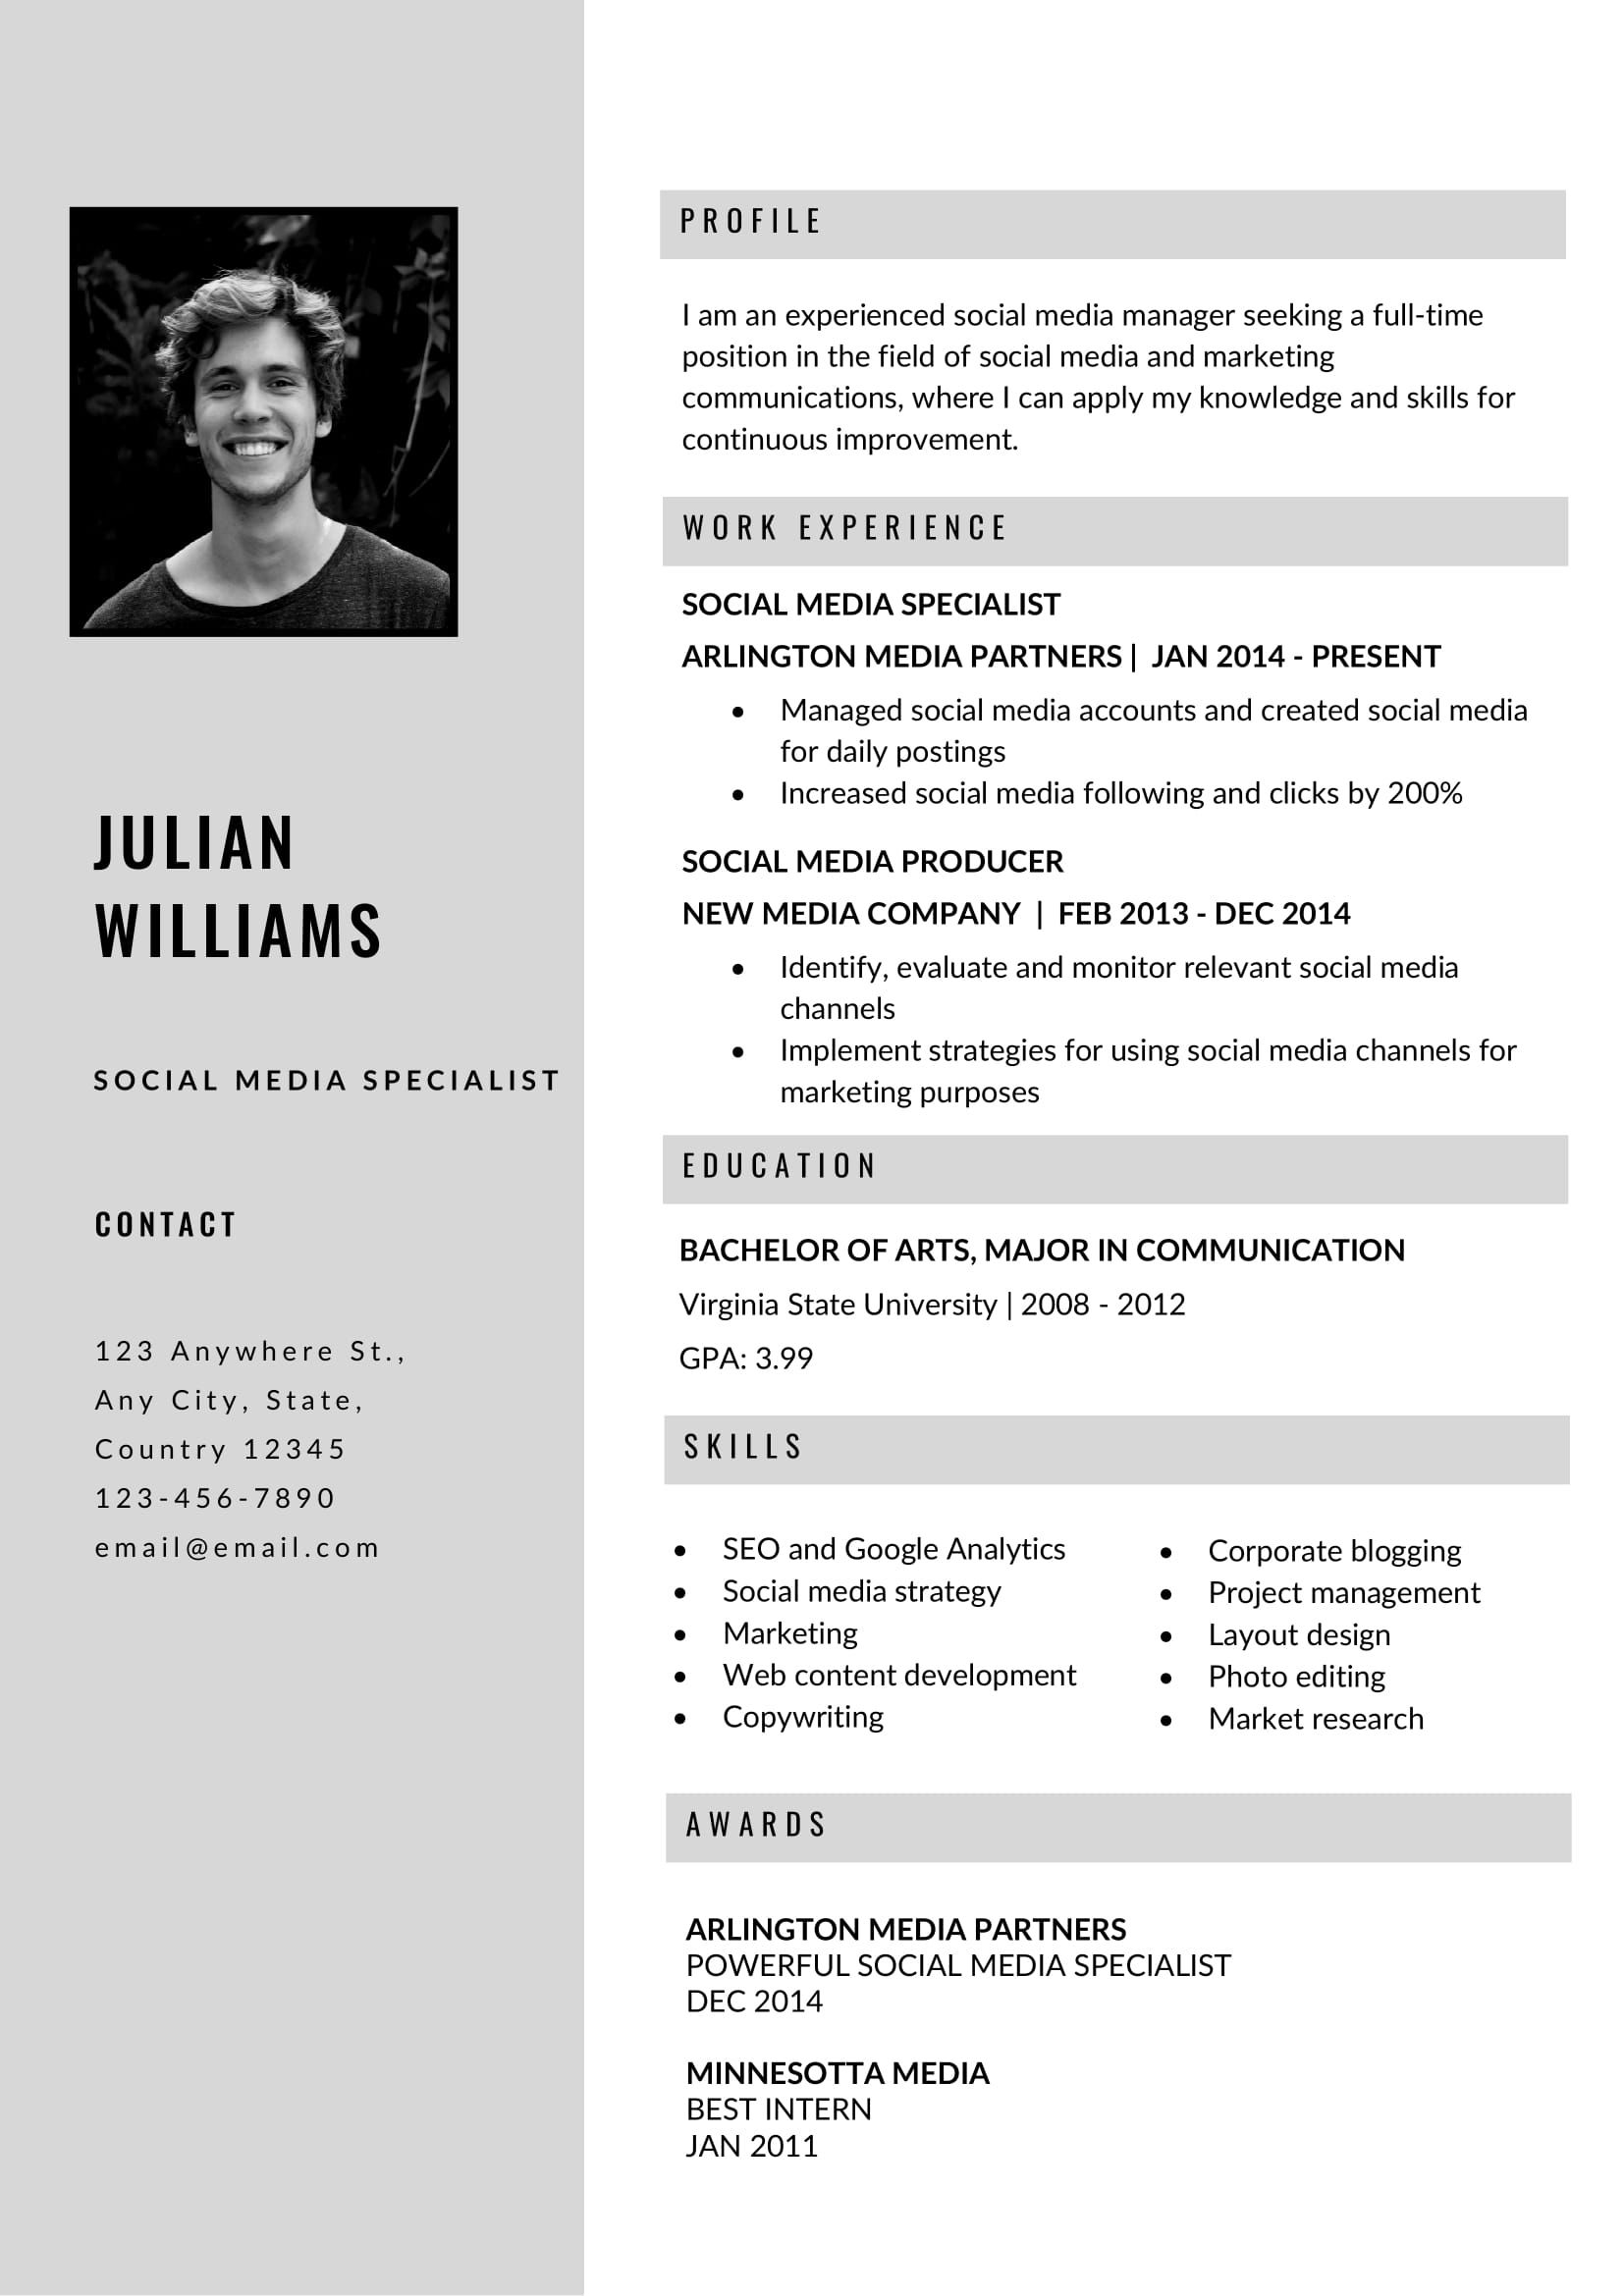 Free Grey Resume Template In Ms Word Format Resume Template Microsoft Word Resume Template Free Professional Resume Template